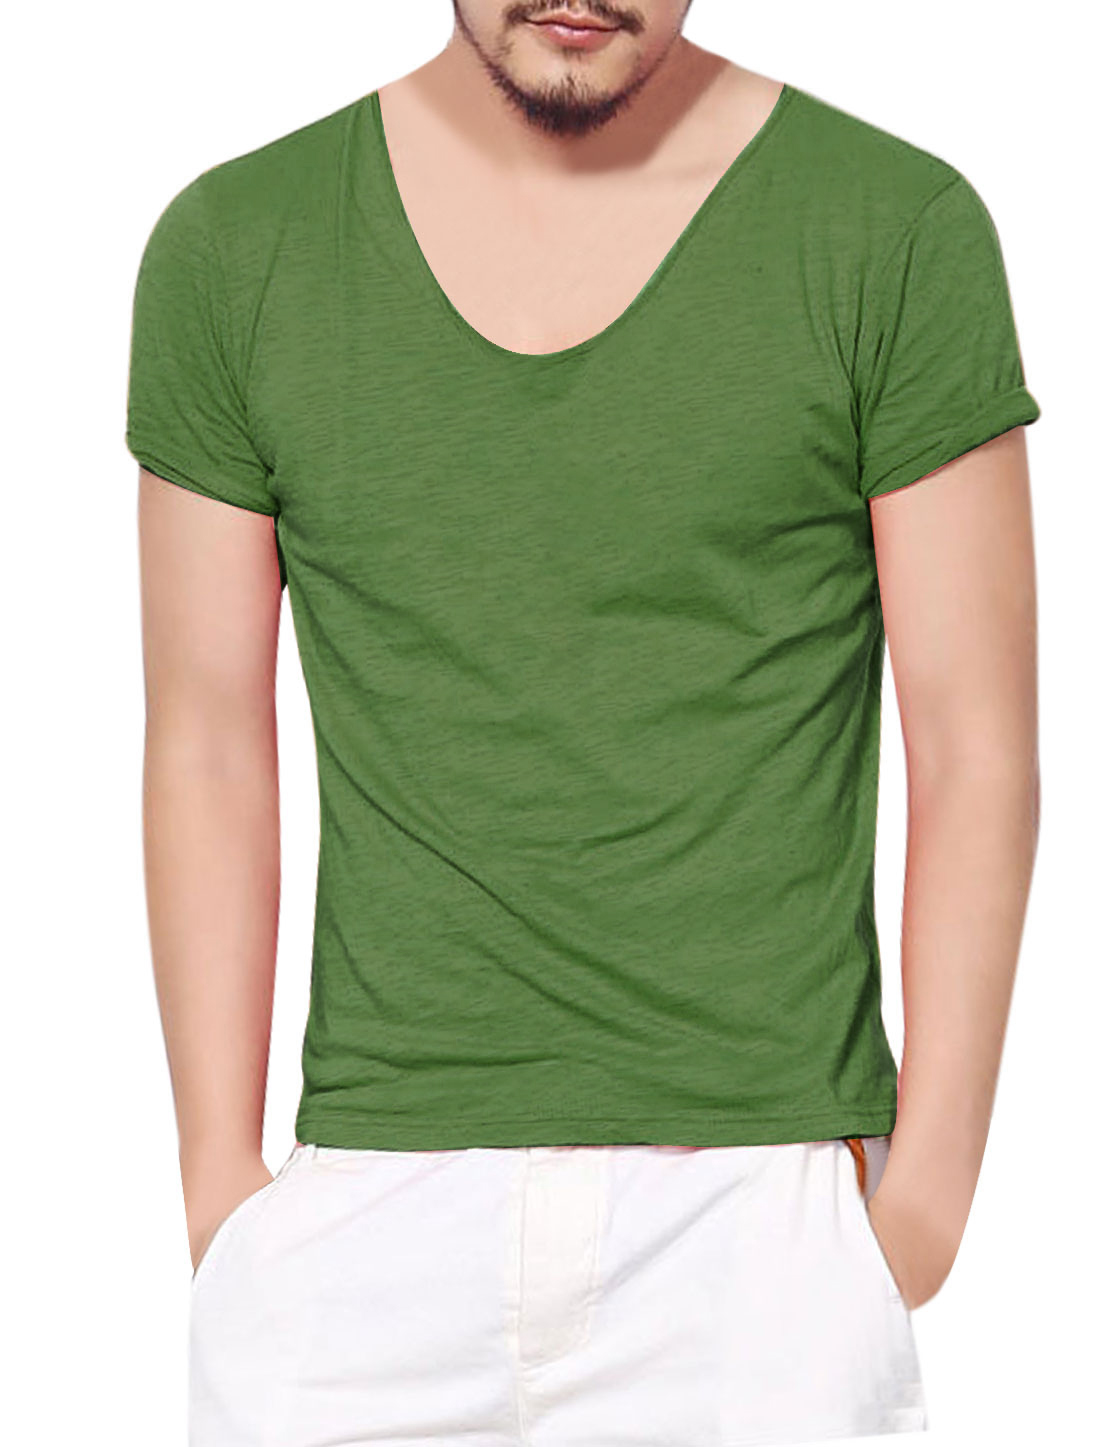 Man Scoop Neck Short Sleeve Casual Top Green M